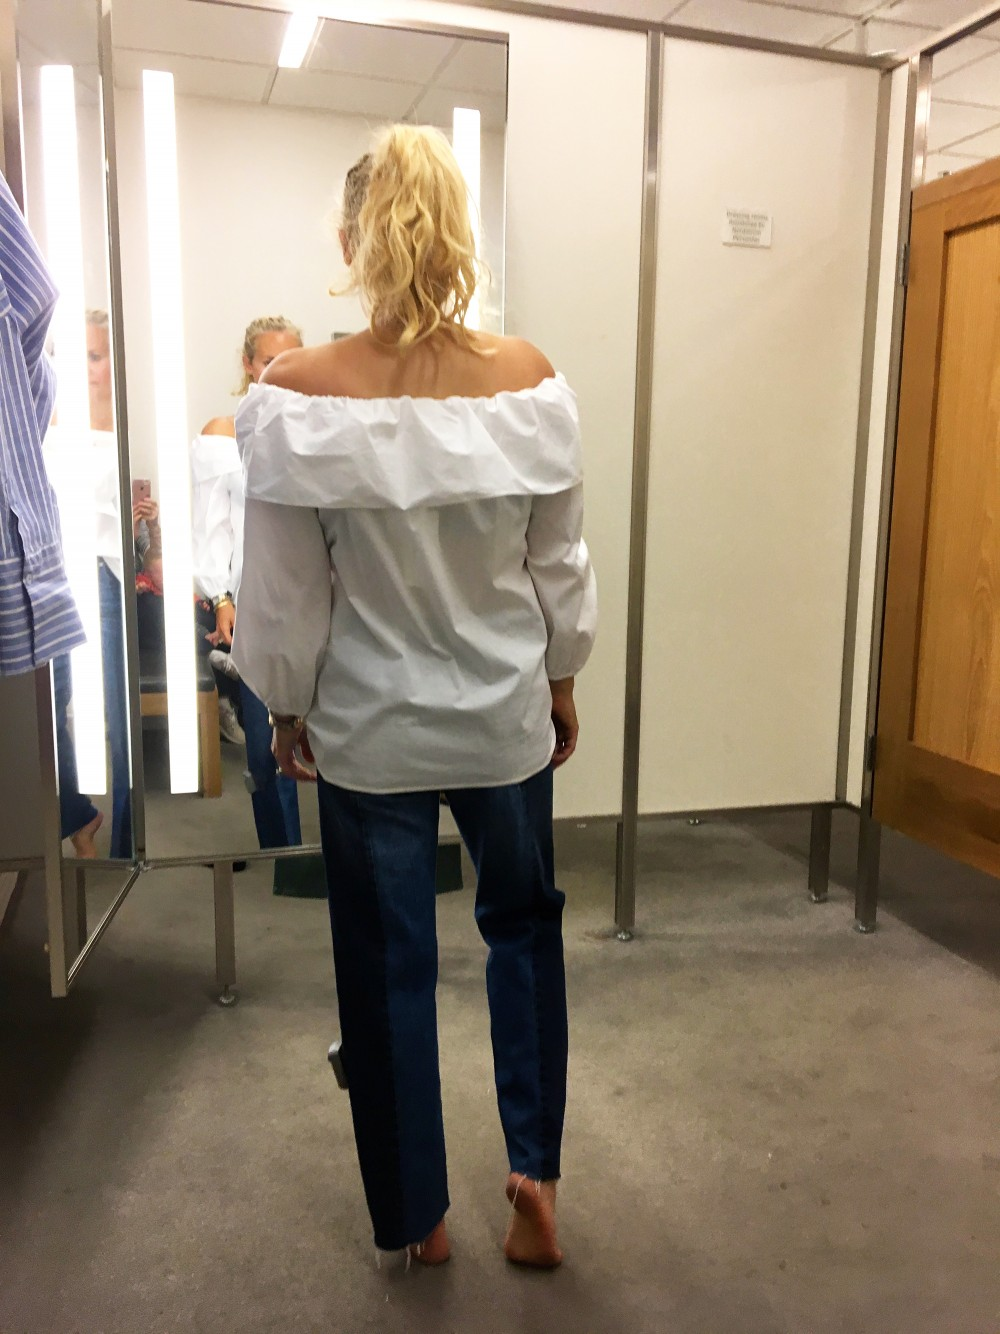 Nordstrom Half Yearly Sale-Dressing Room Diaries-Have Need Want 5